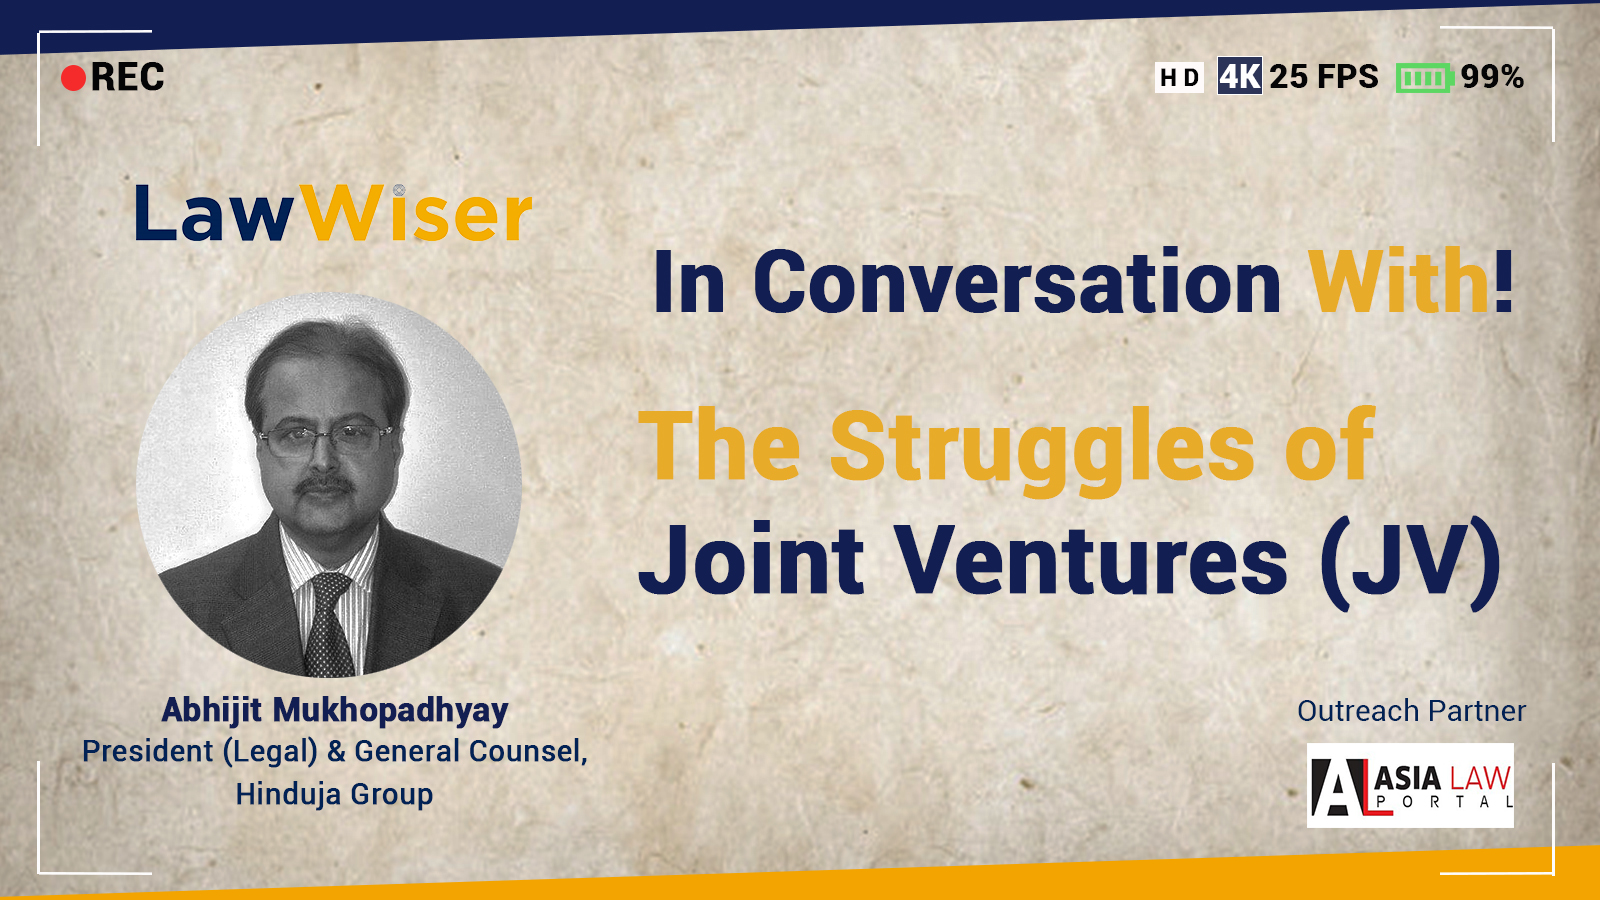 In Conversation - The Struggle of Joint Ventures